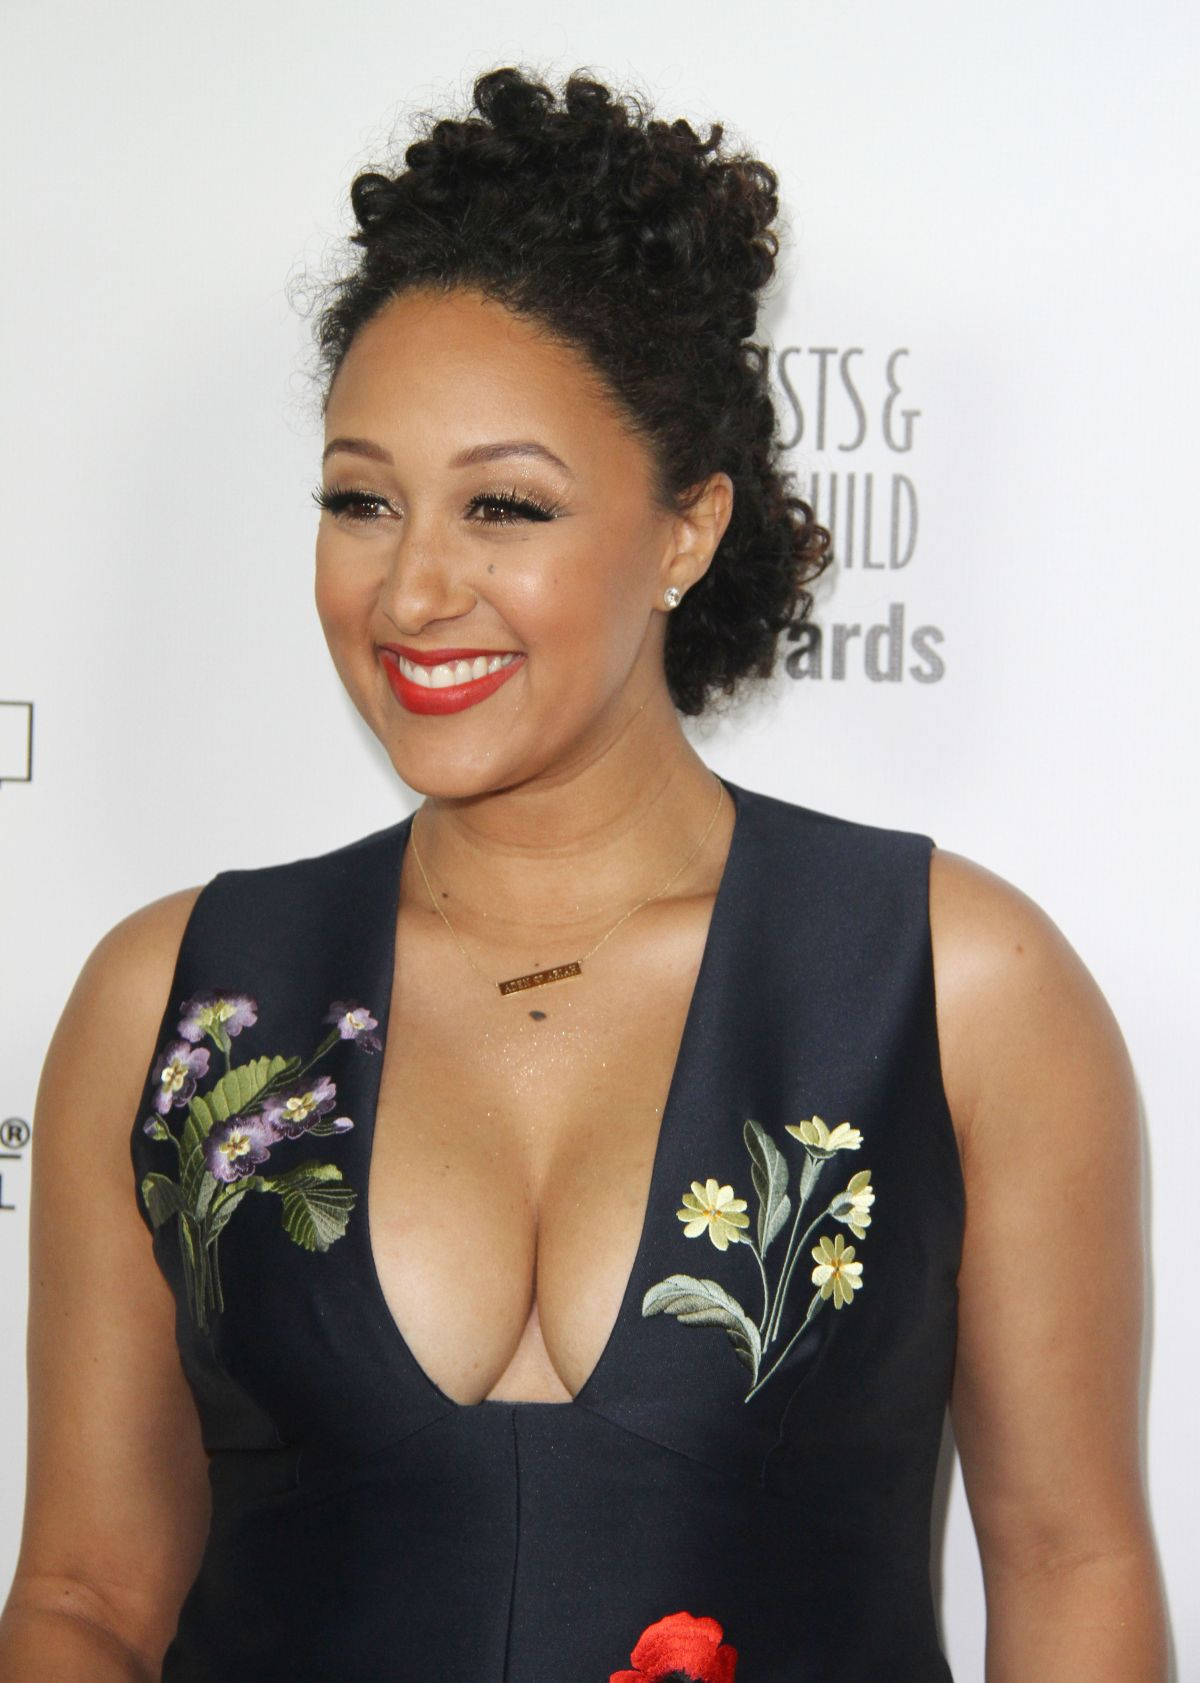 TAMERA MOWRY at 2016 Make-up Artist and Hair Stylist Guild Awards i Los Angeles 02/20/2016